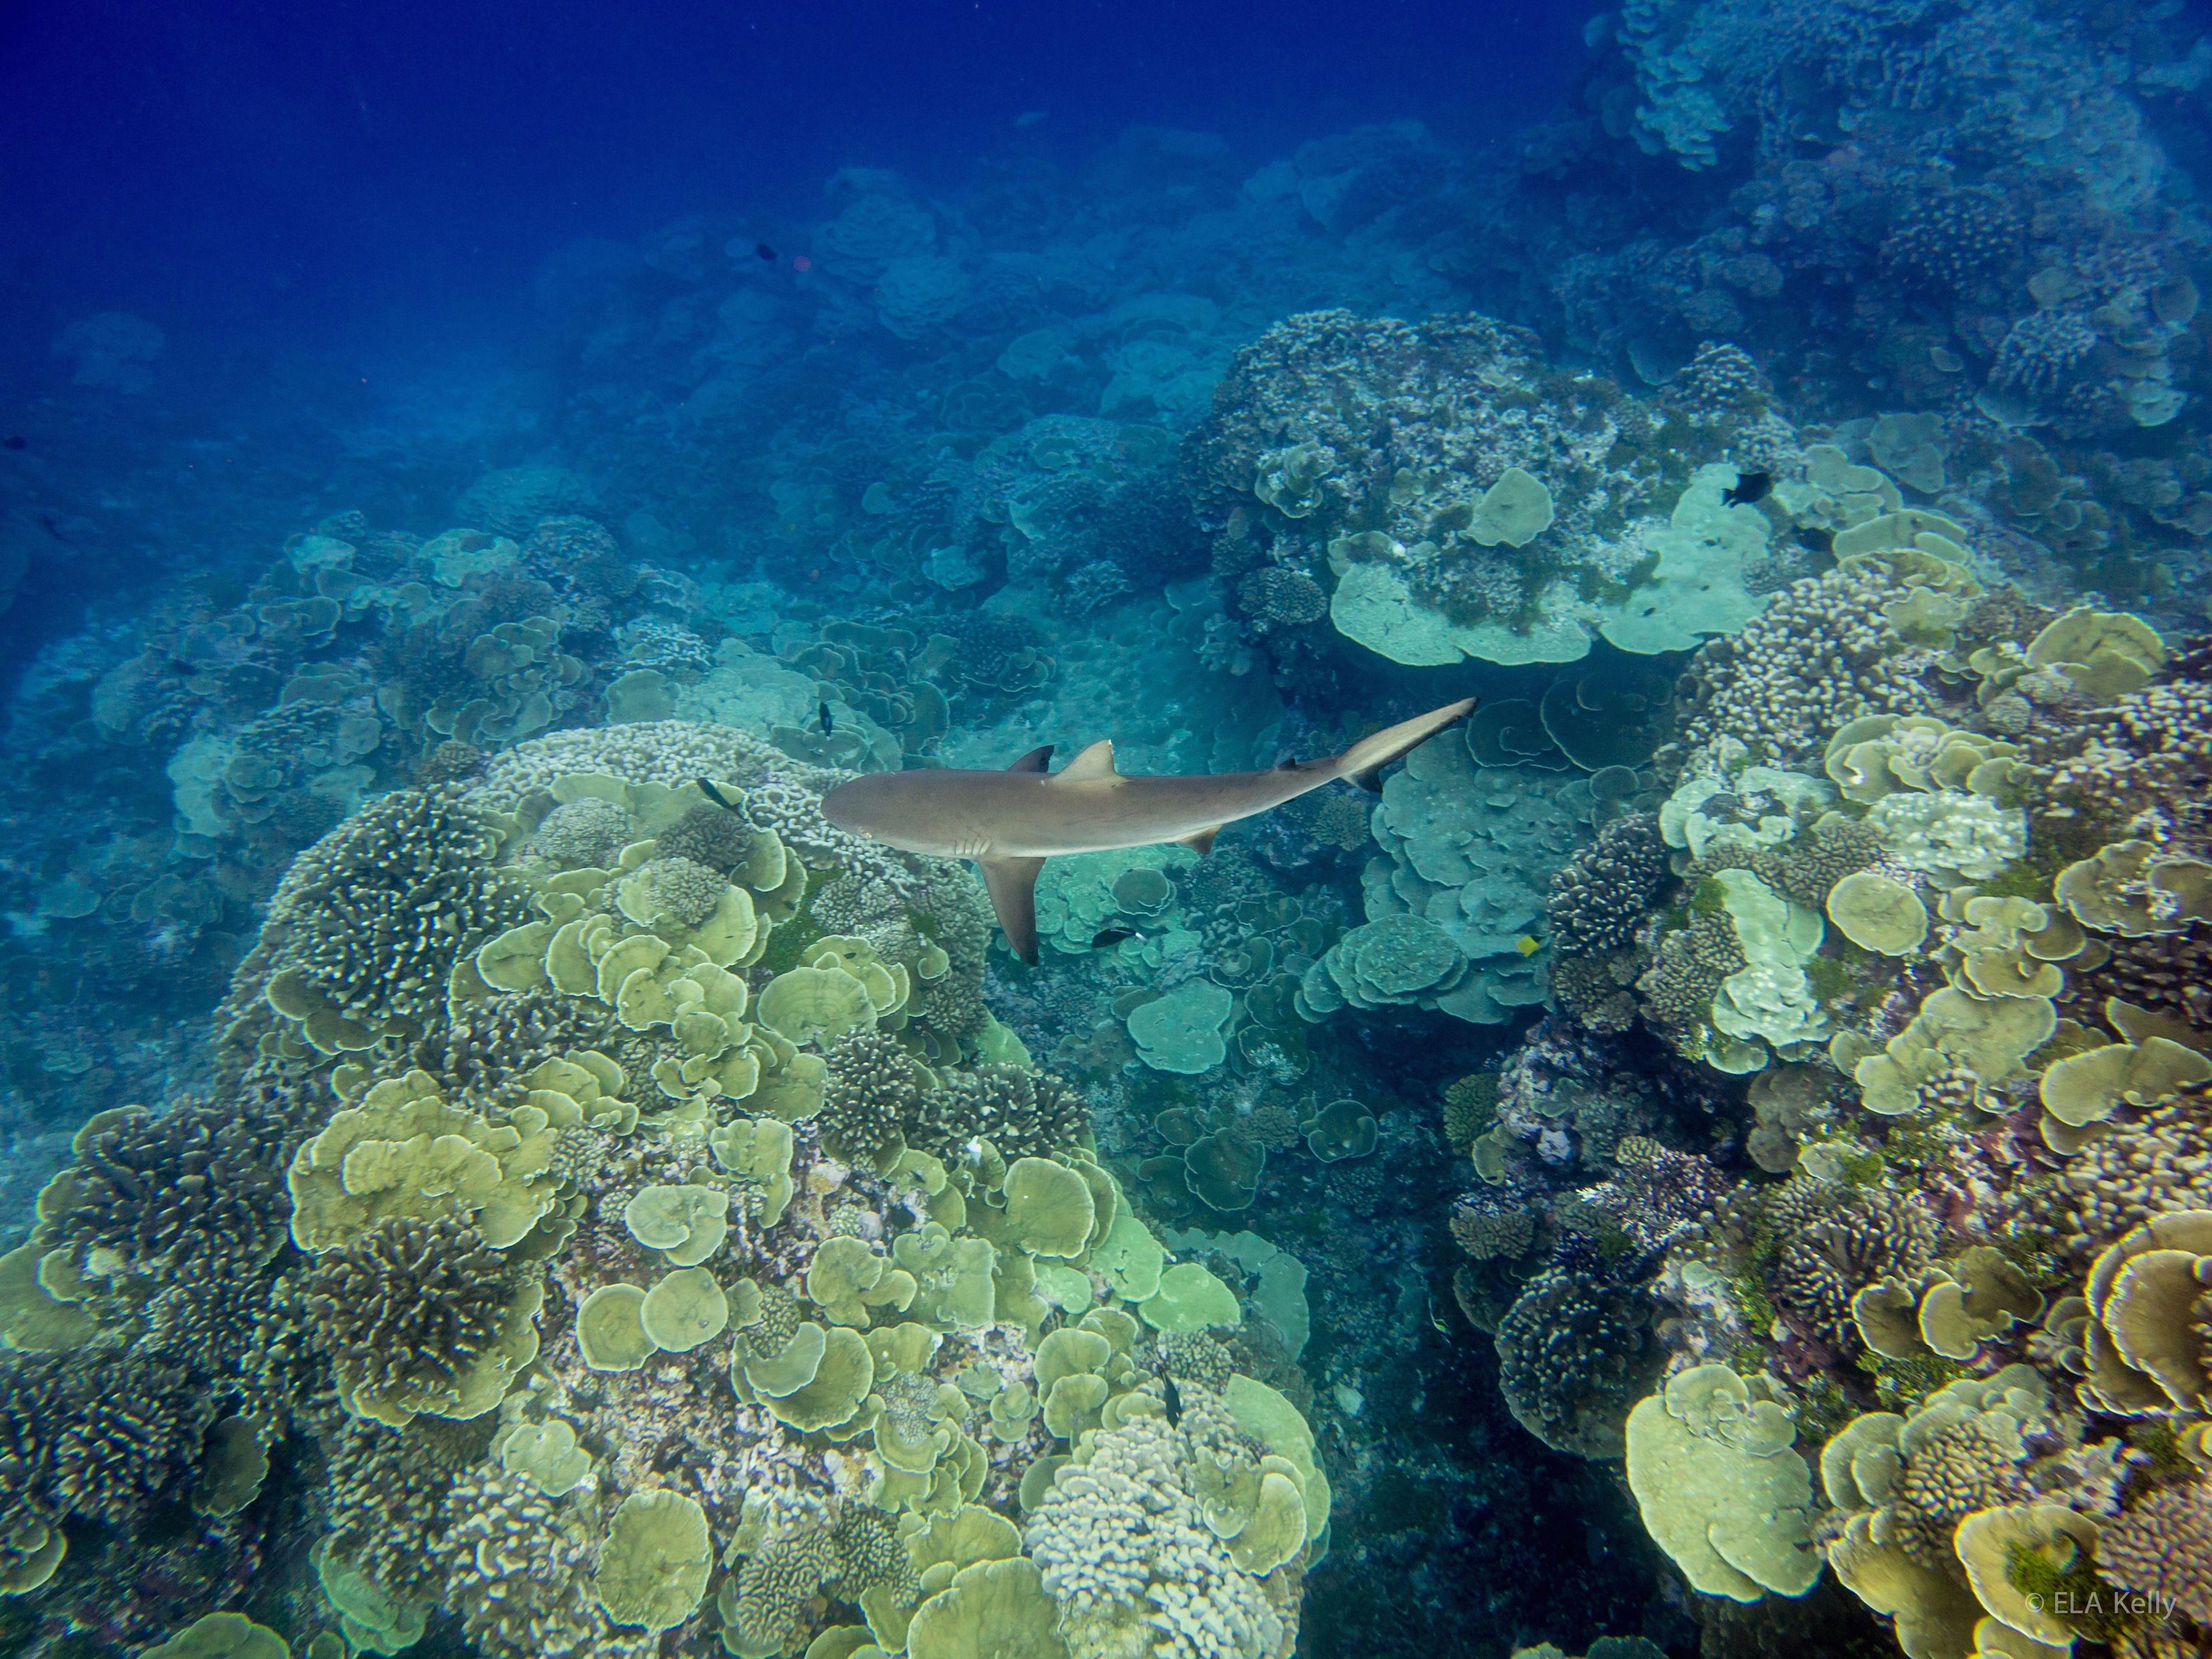 Bacteria Surrounding Coral Reefs Change In Synchrony